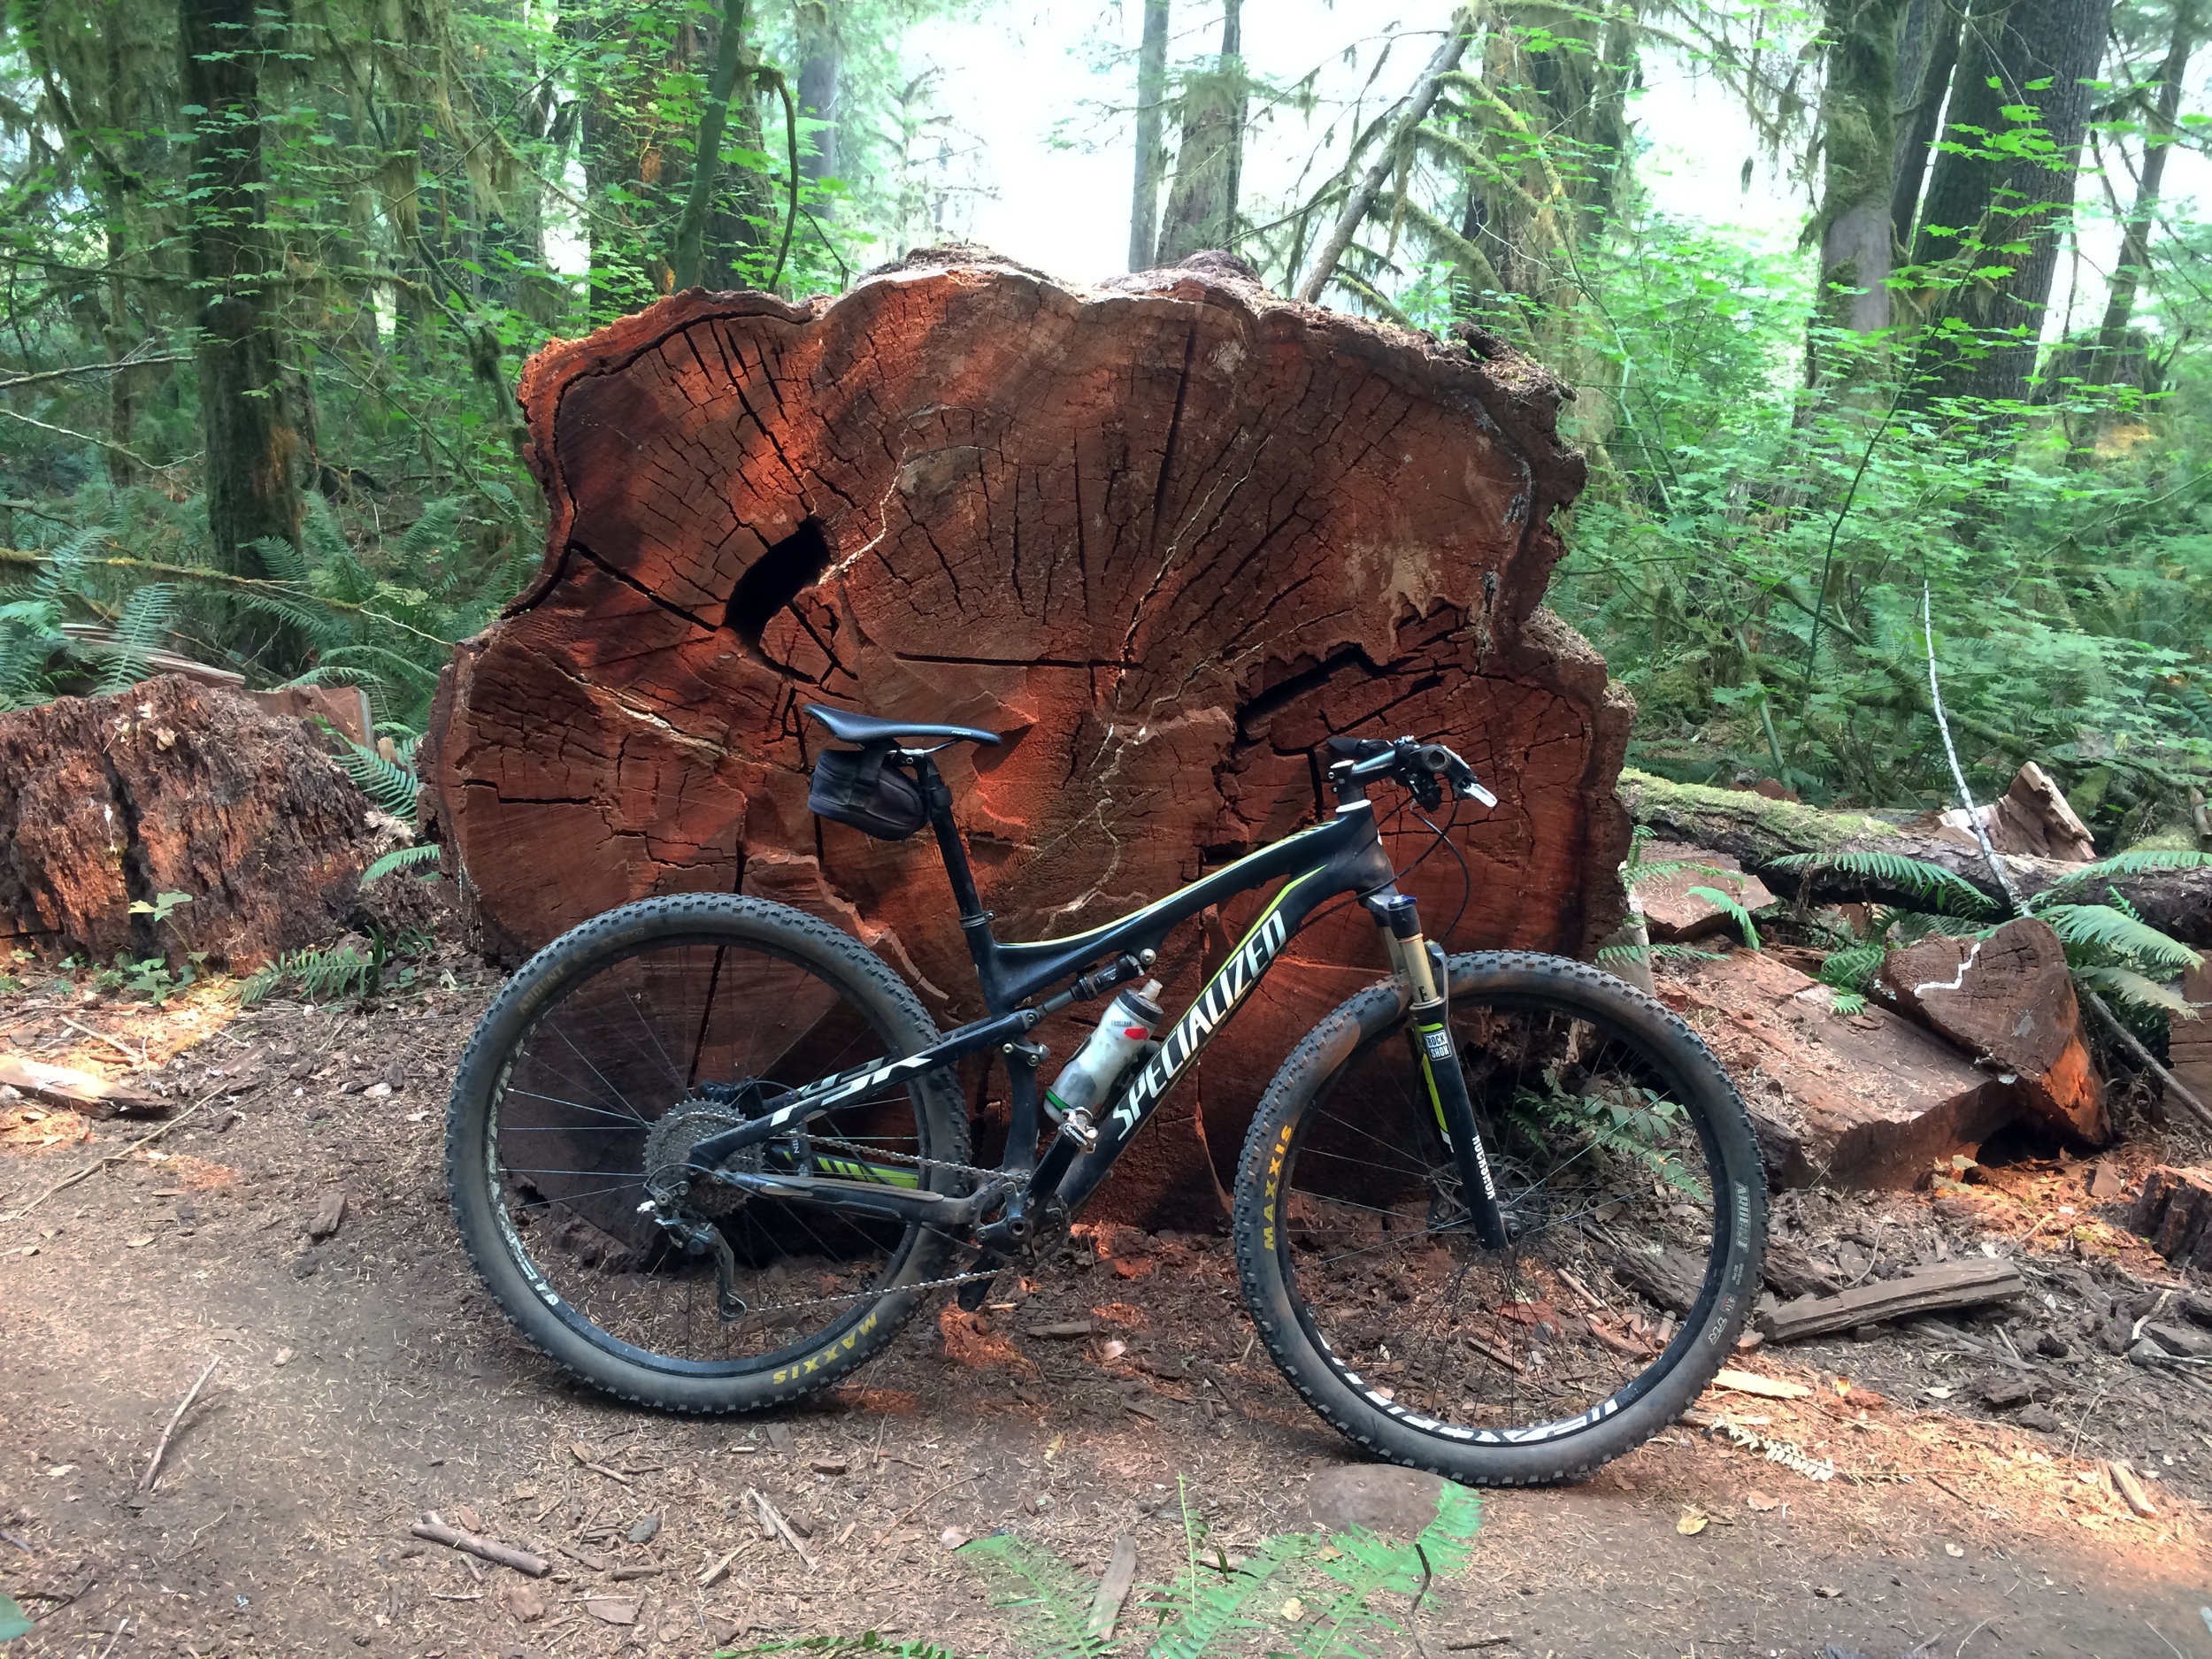 Top to bottom: John Fenger, frequent mountain biker, working his way through the rough lava section. A downed giant old growth conifer tree dwarfs Bob's bicycle in the Willamette Forest.